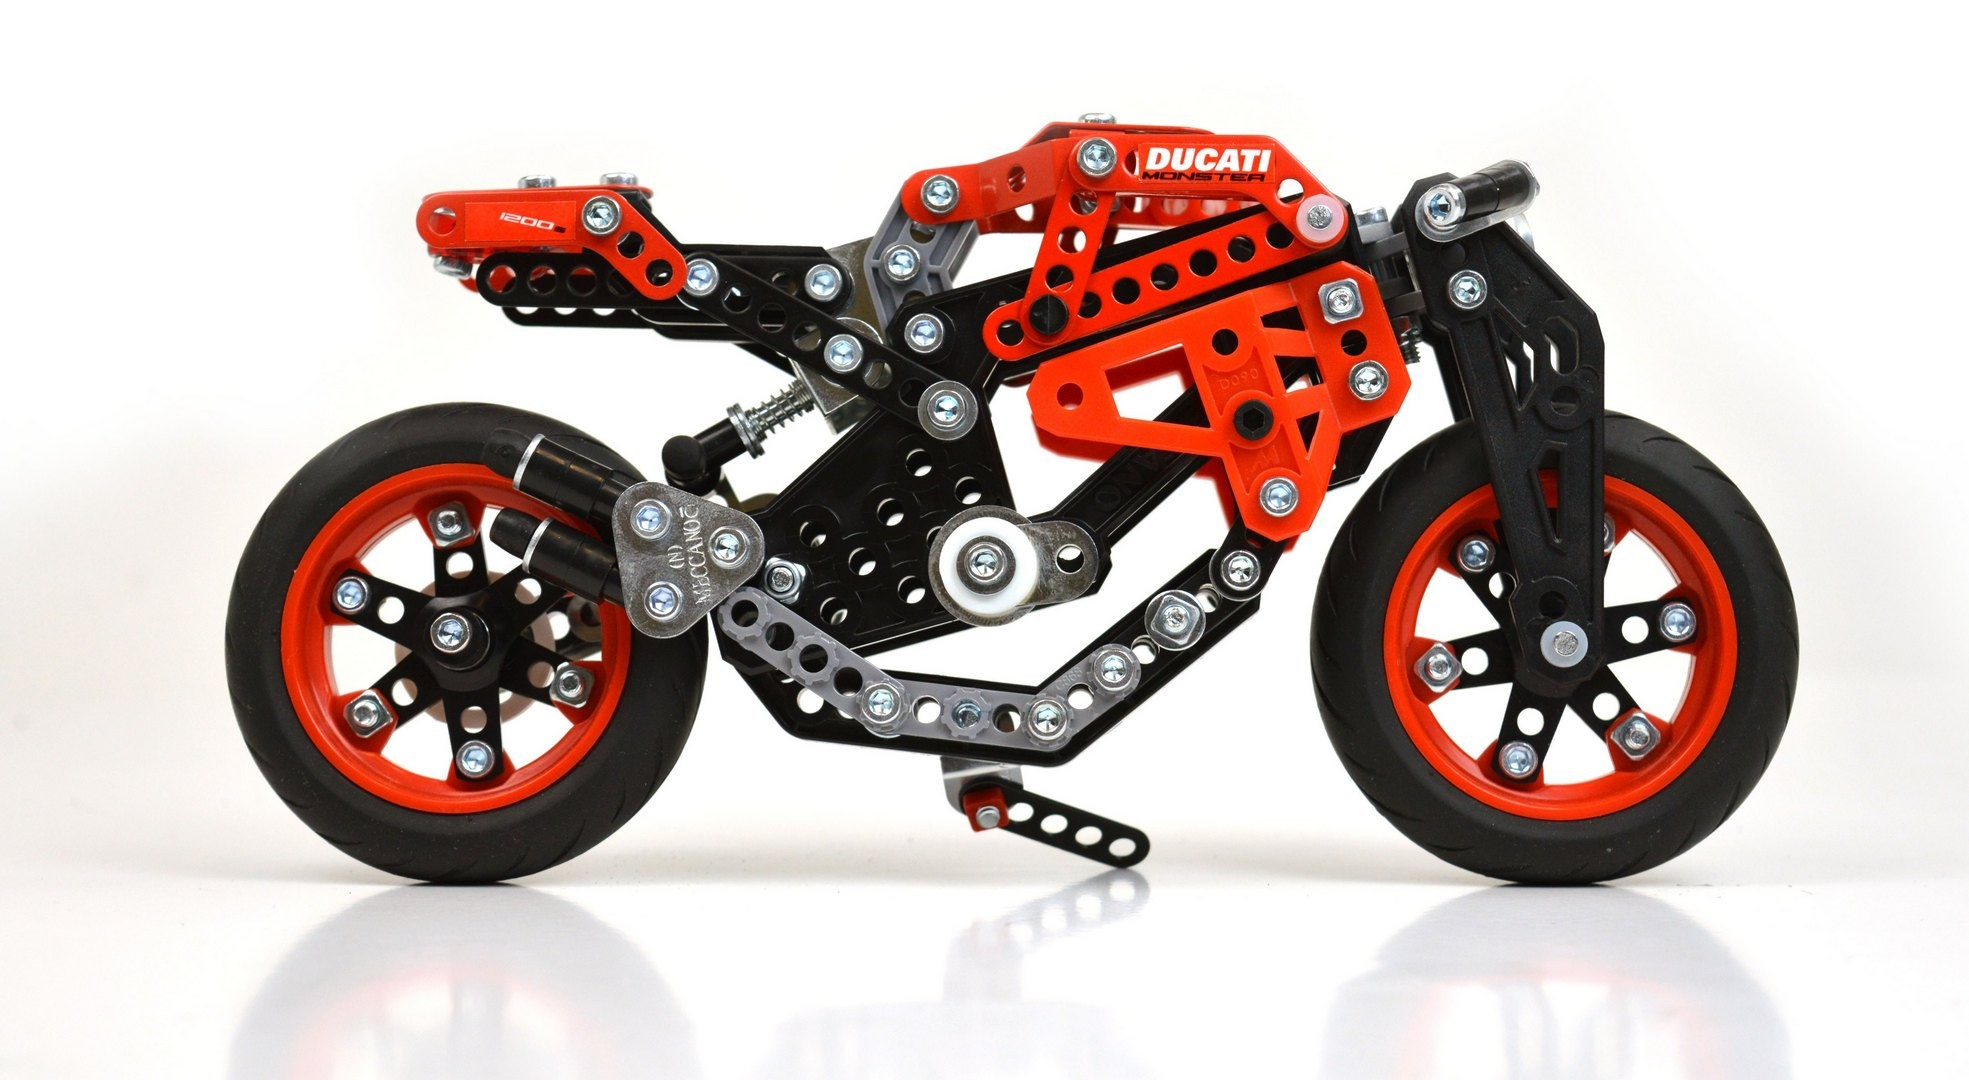 Ducati Meccano Model Sets Are Probably the Best Build It Yourself